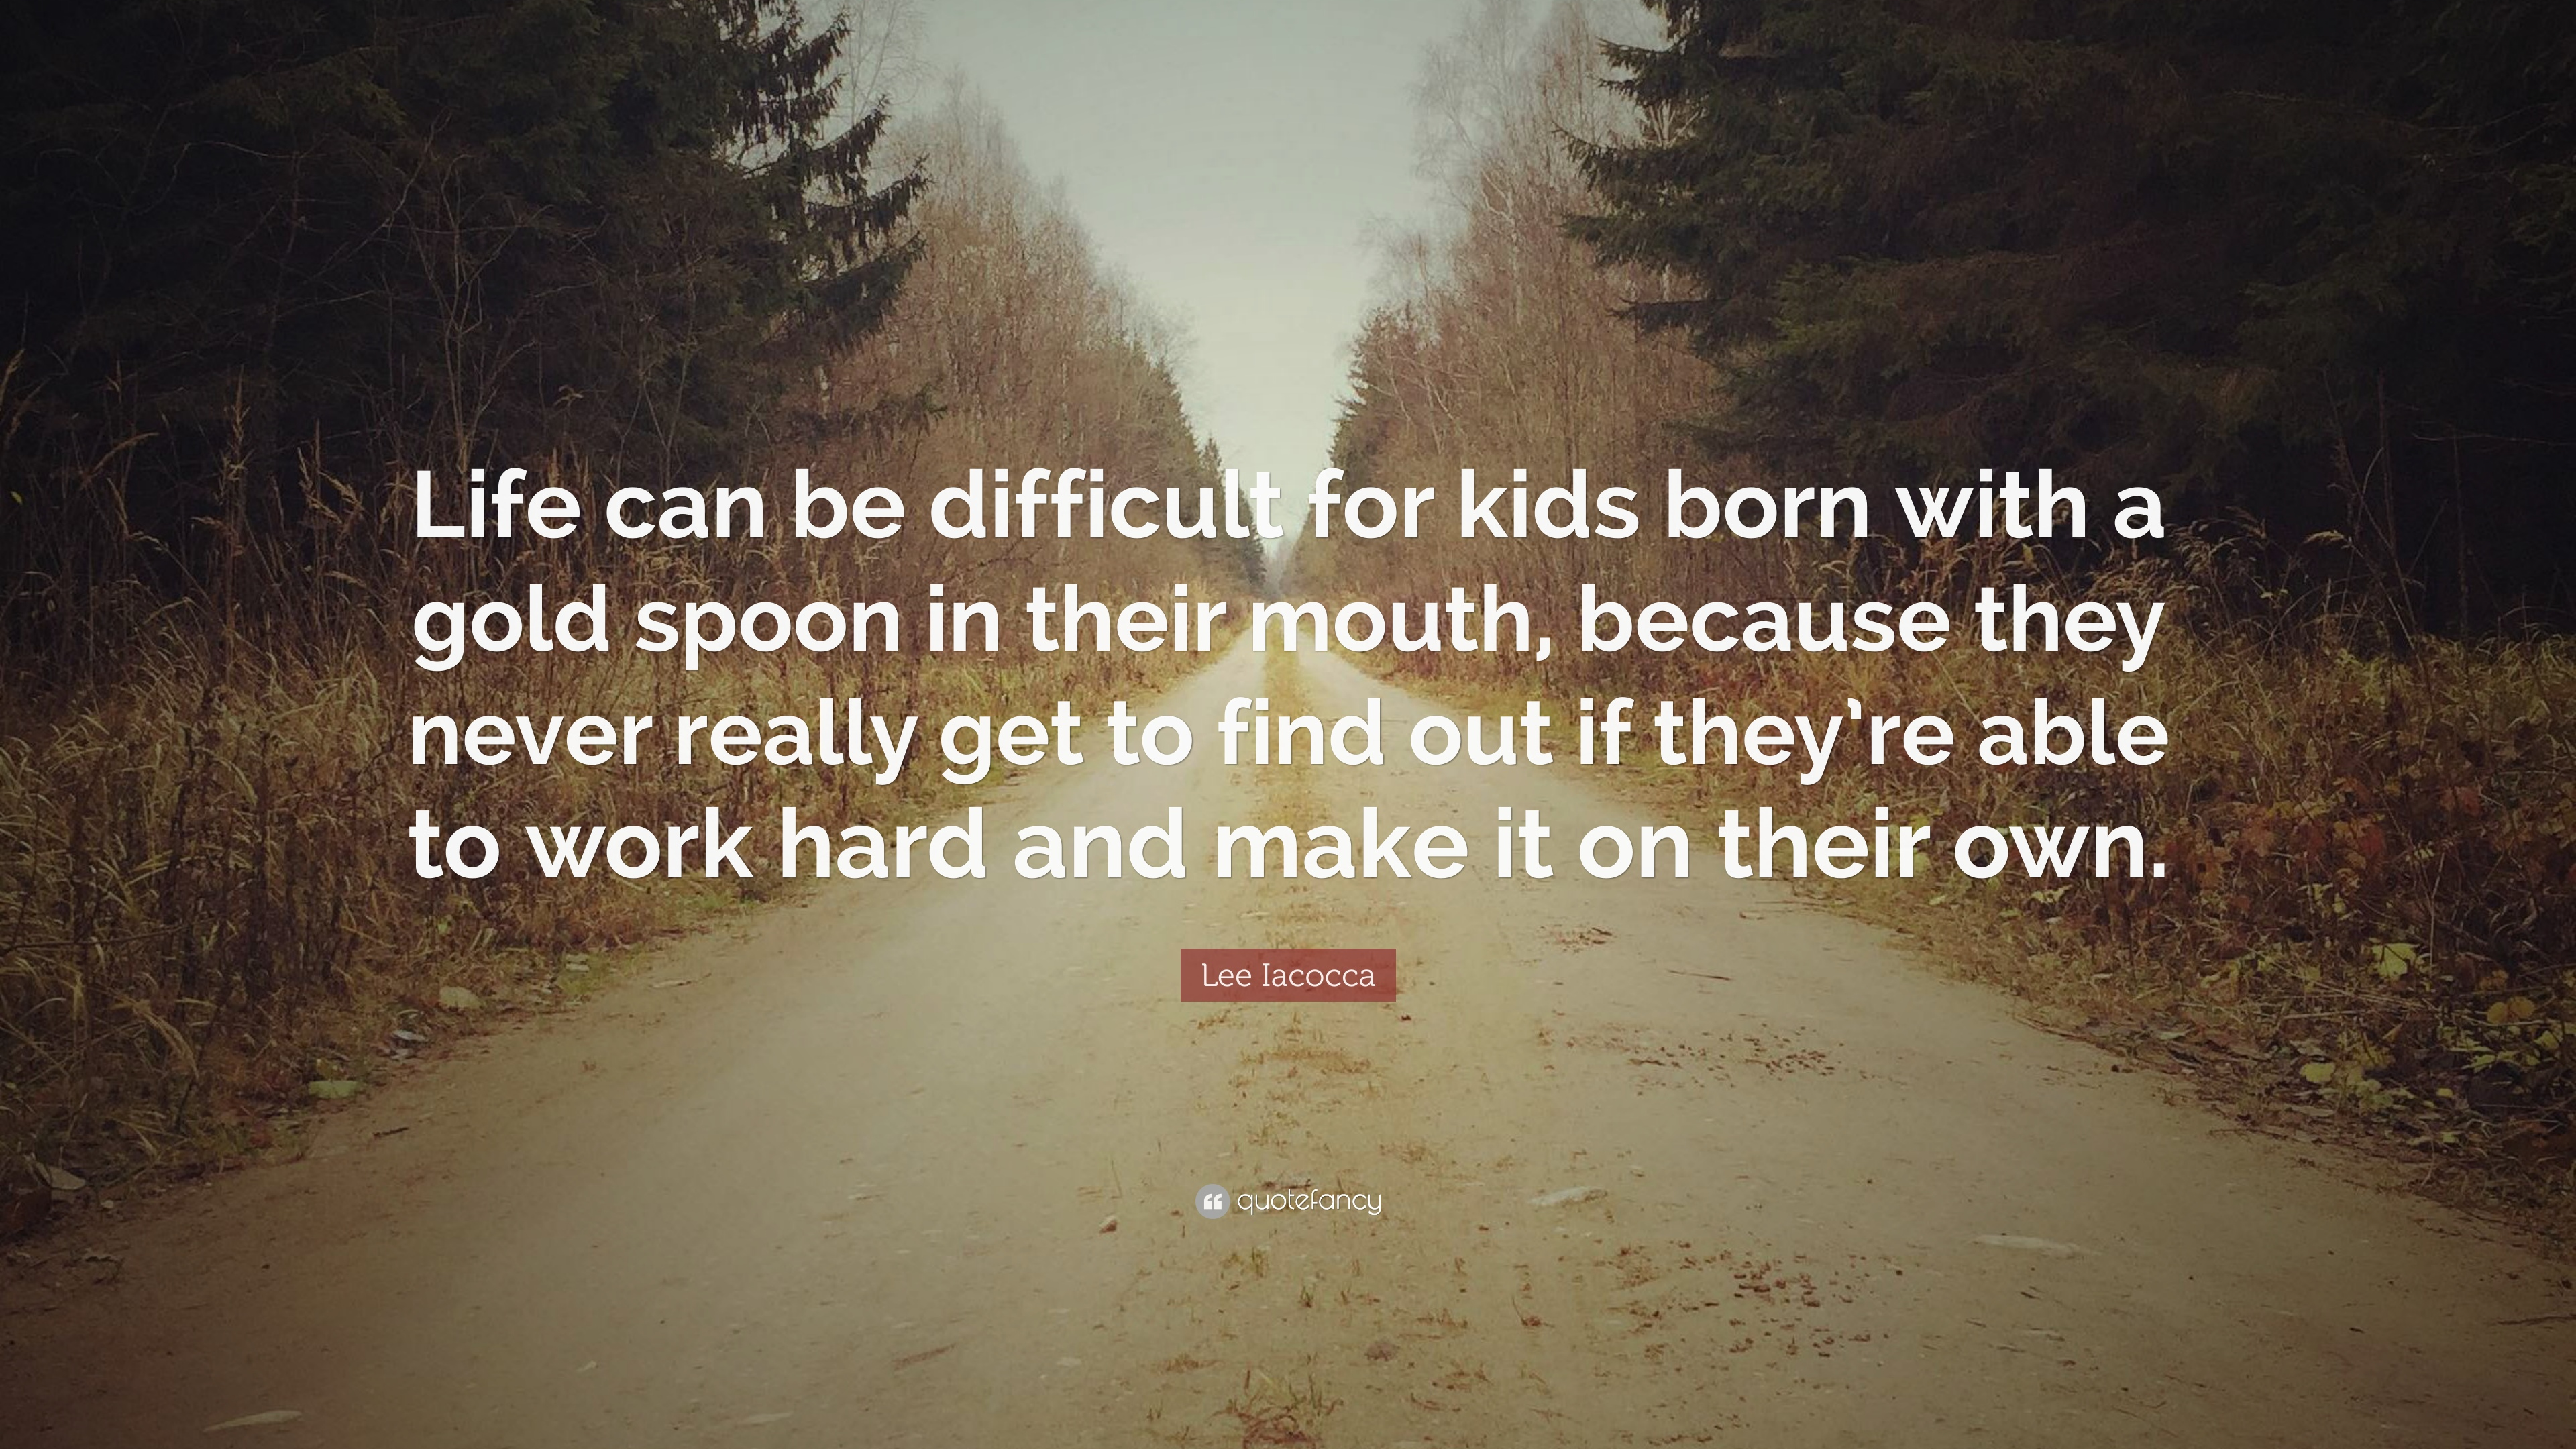 Lee Iacocca Quote Life Can Be Difficult For Kids Born With A Gold